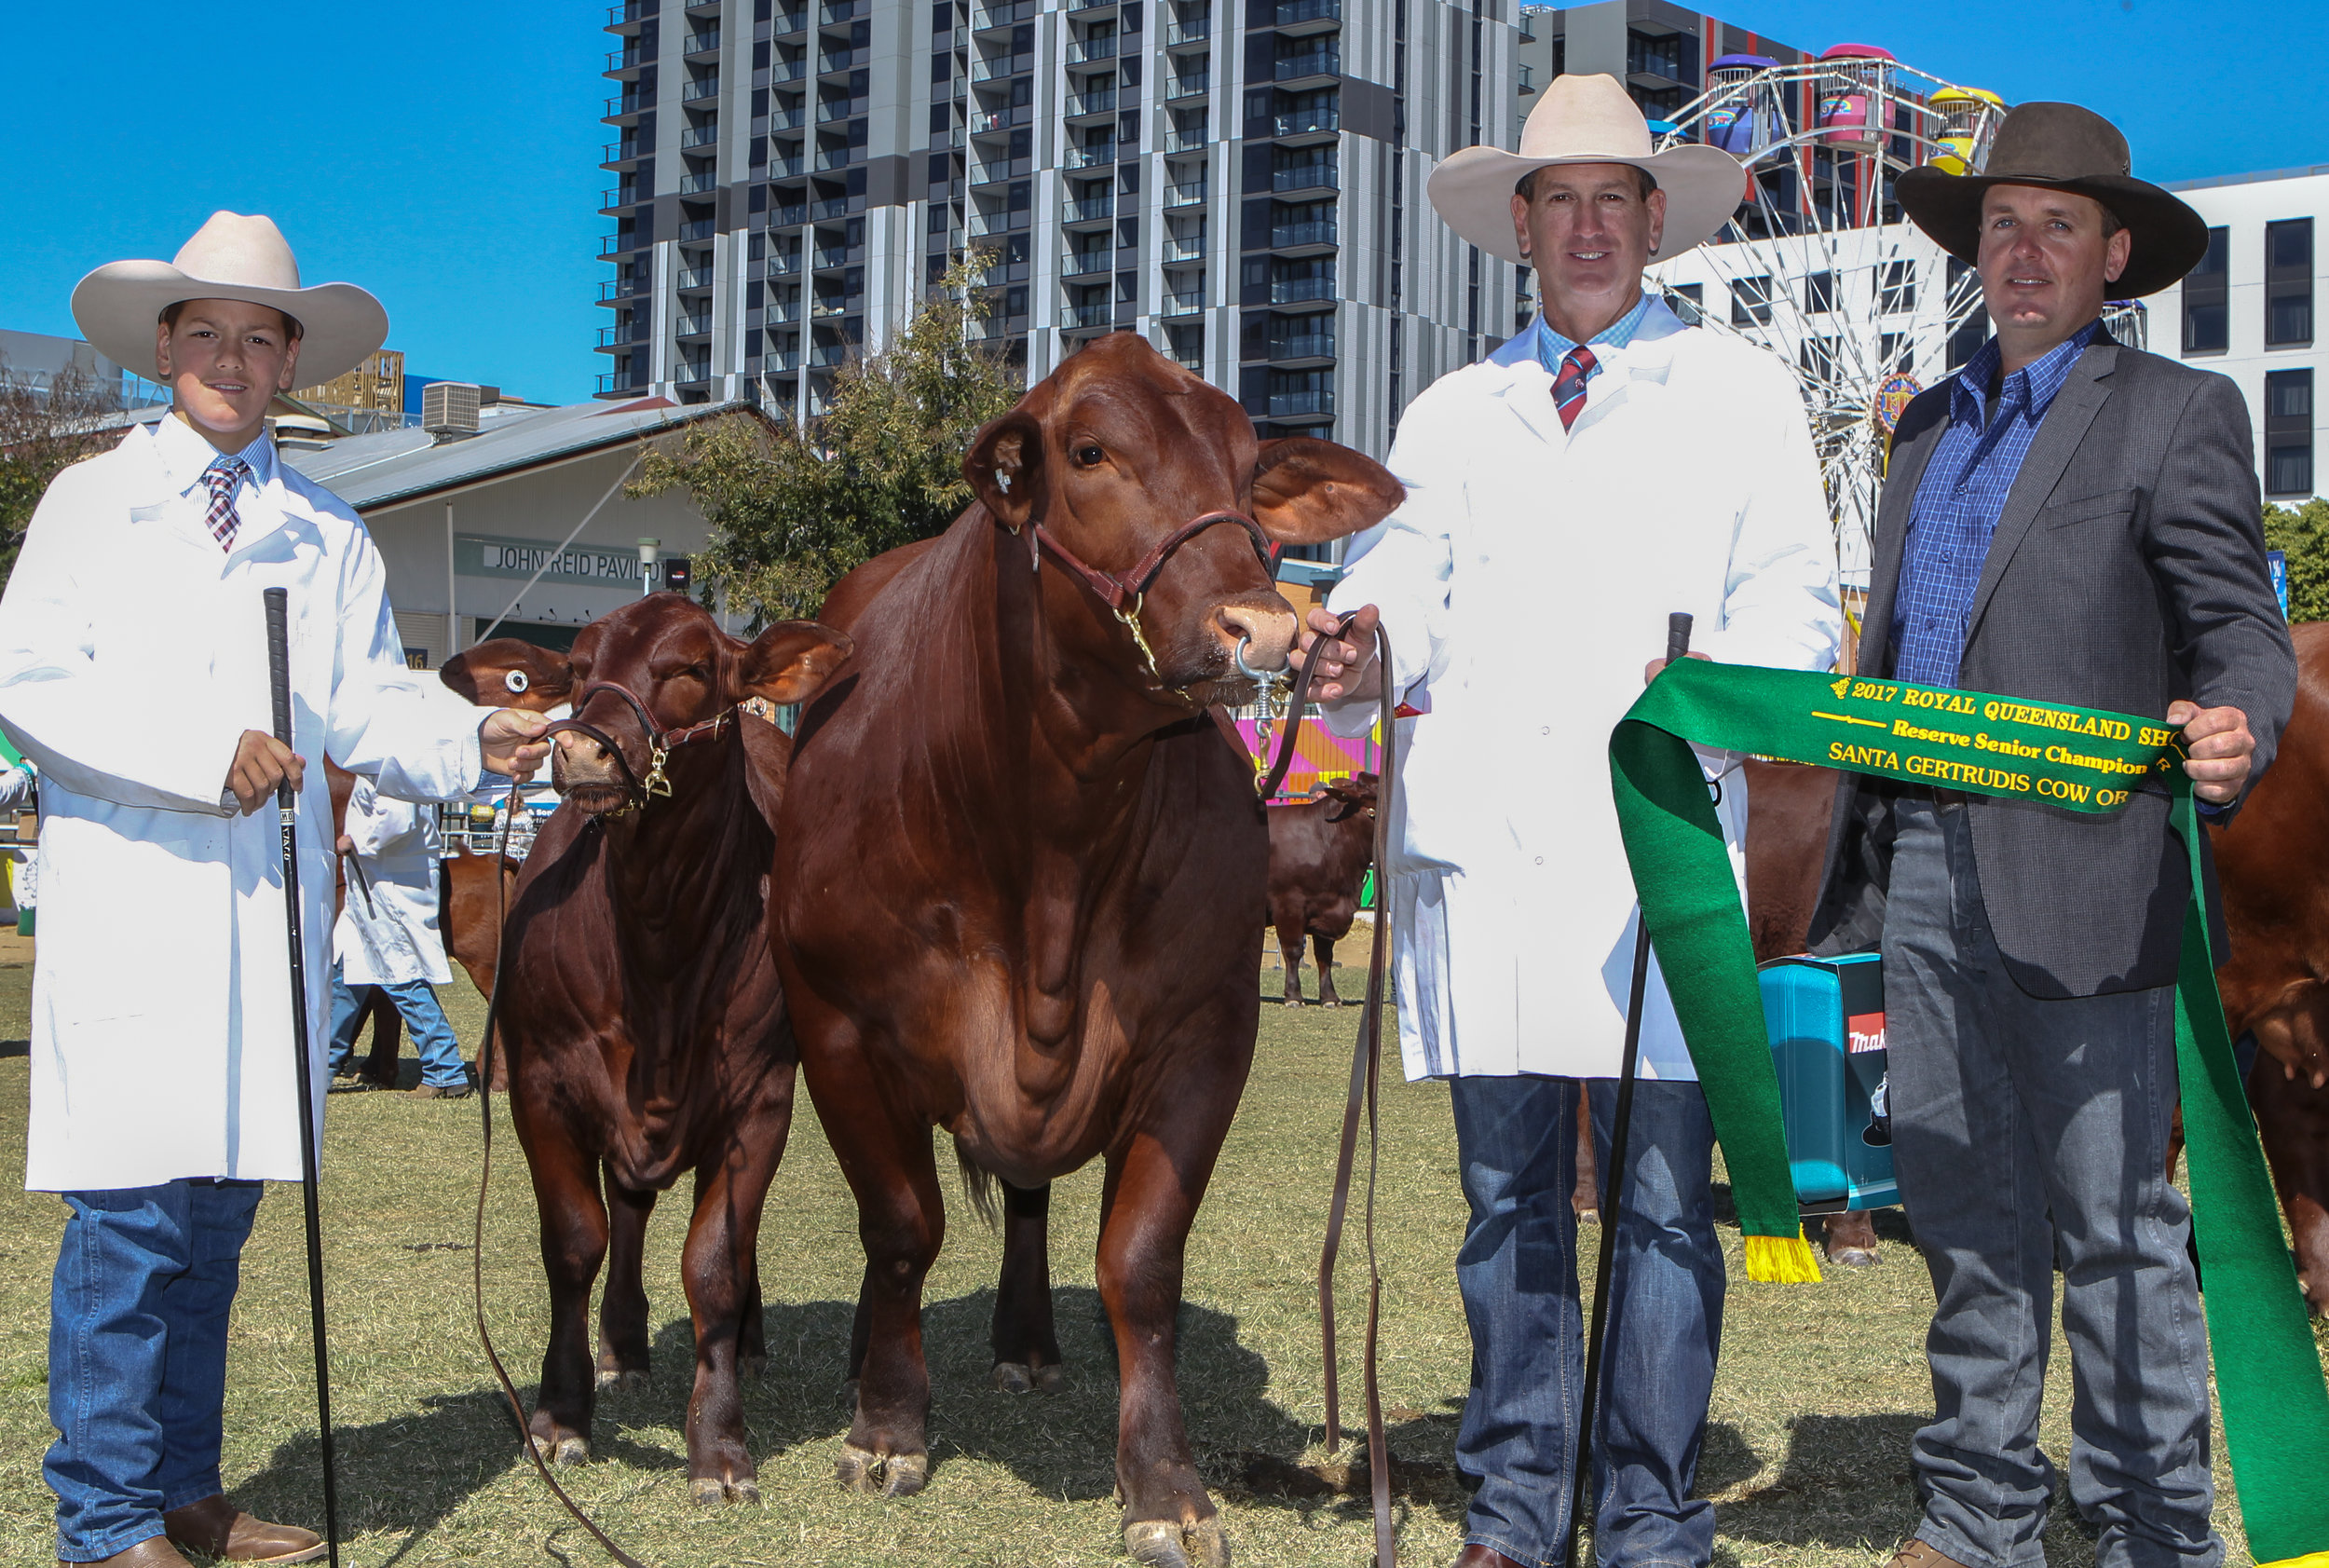 Waco Frankie and calf Waco Nancy- Reserve Senior Champion Cow awarded the Dangarfield Cattle Company trophy. Trophy presented by Ben Adams. Cow led by David Bassingthwaighte and calf led by Drew Bassingthwaighte